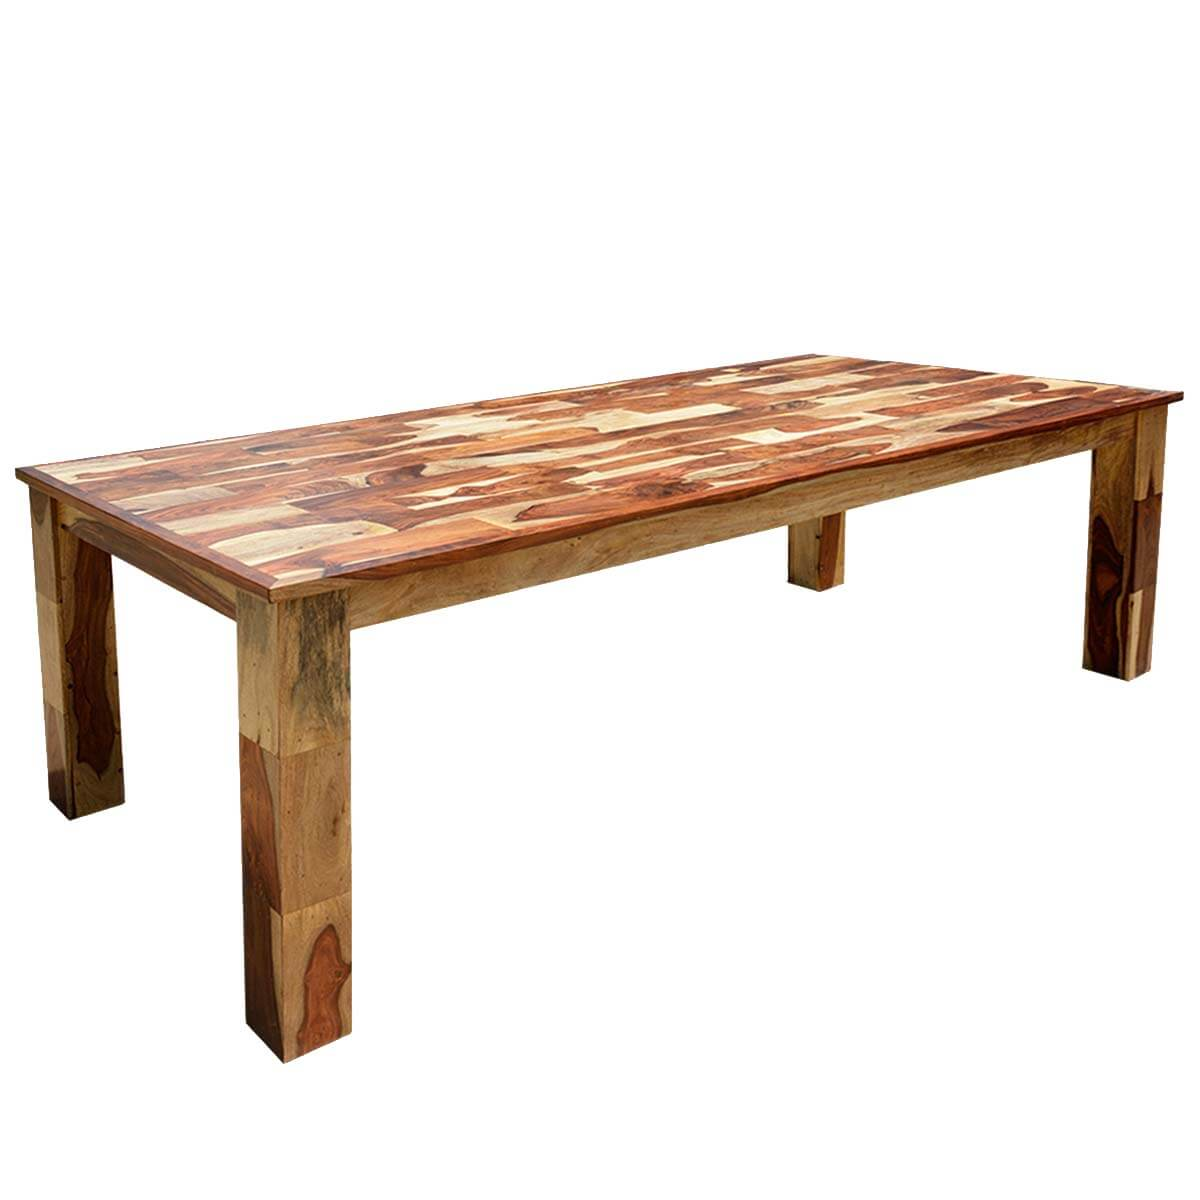 Cariboo rustic solid wood large rectangular dining table for Modern large dining table